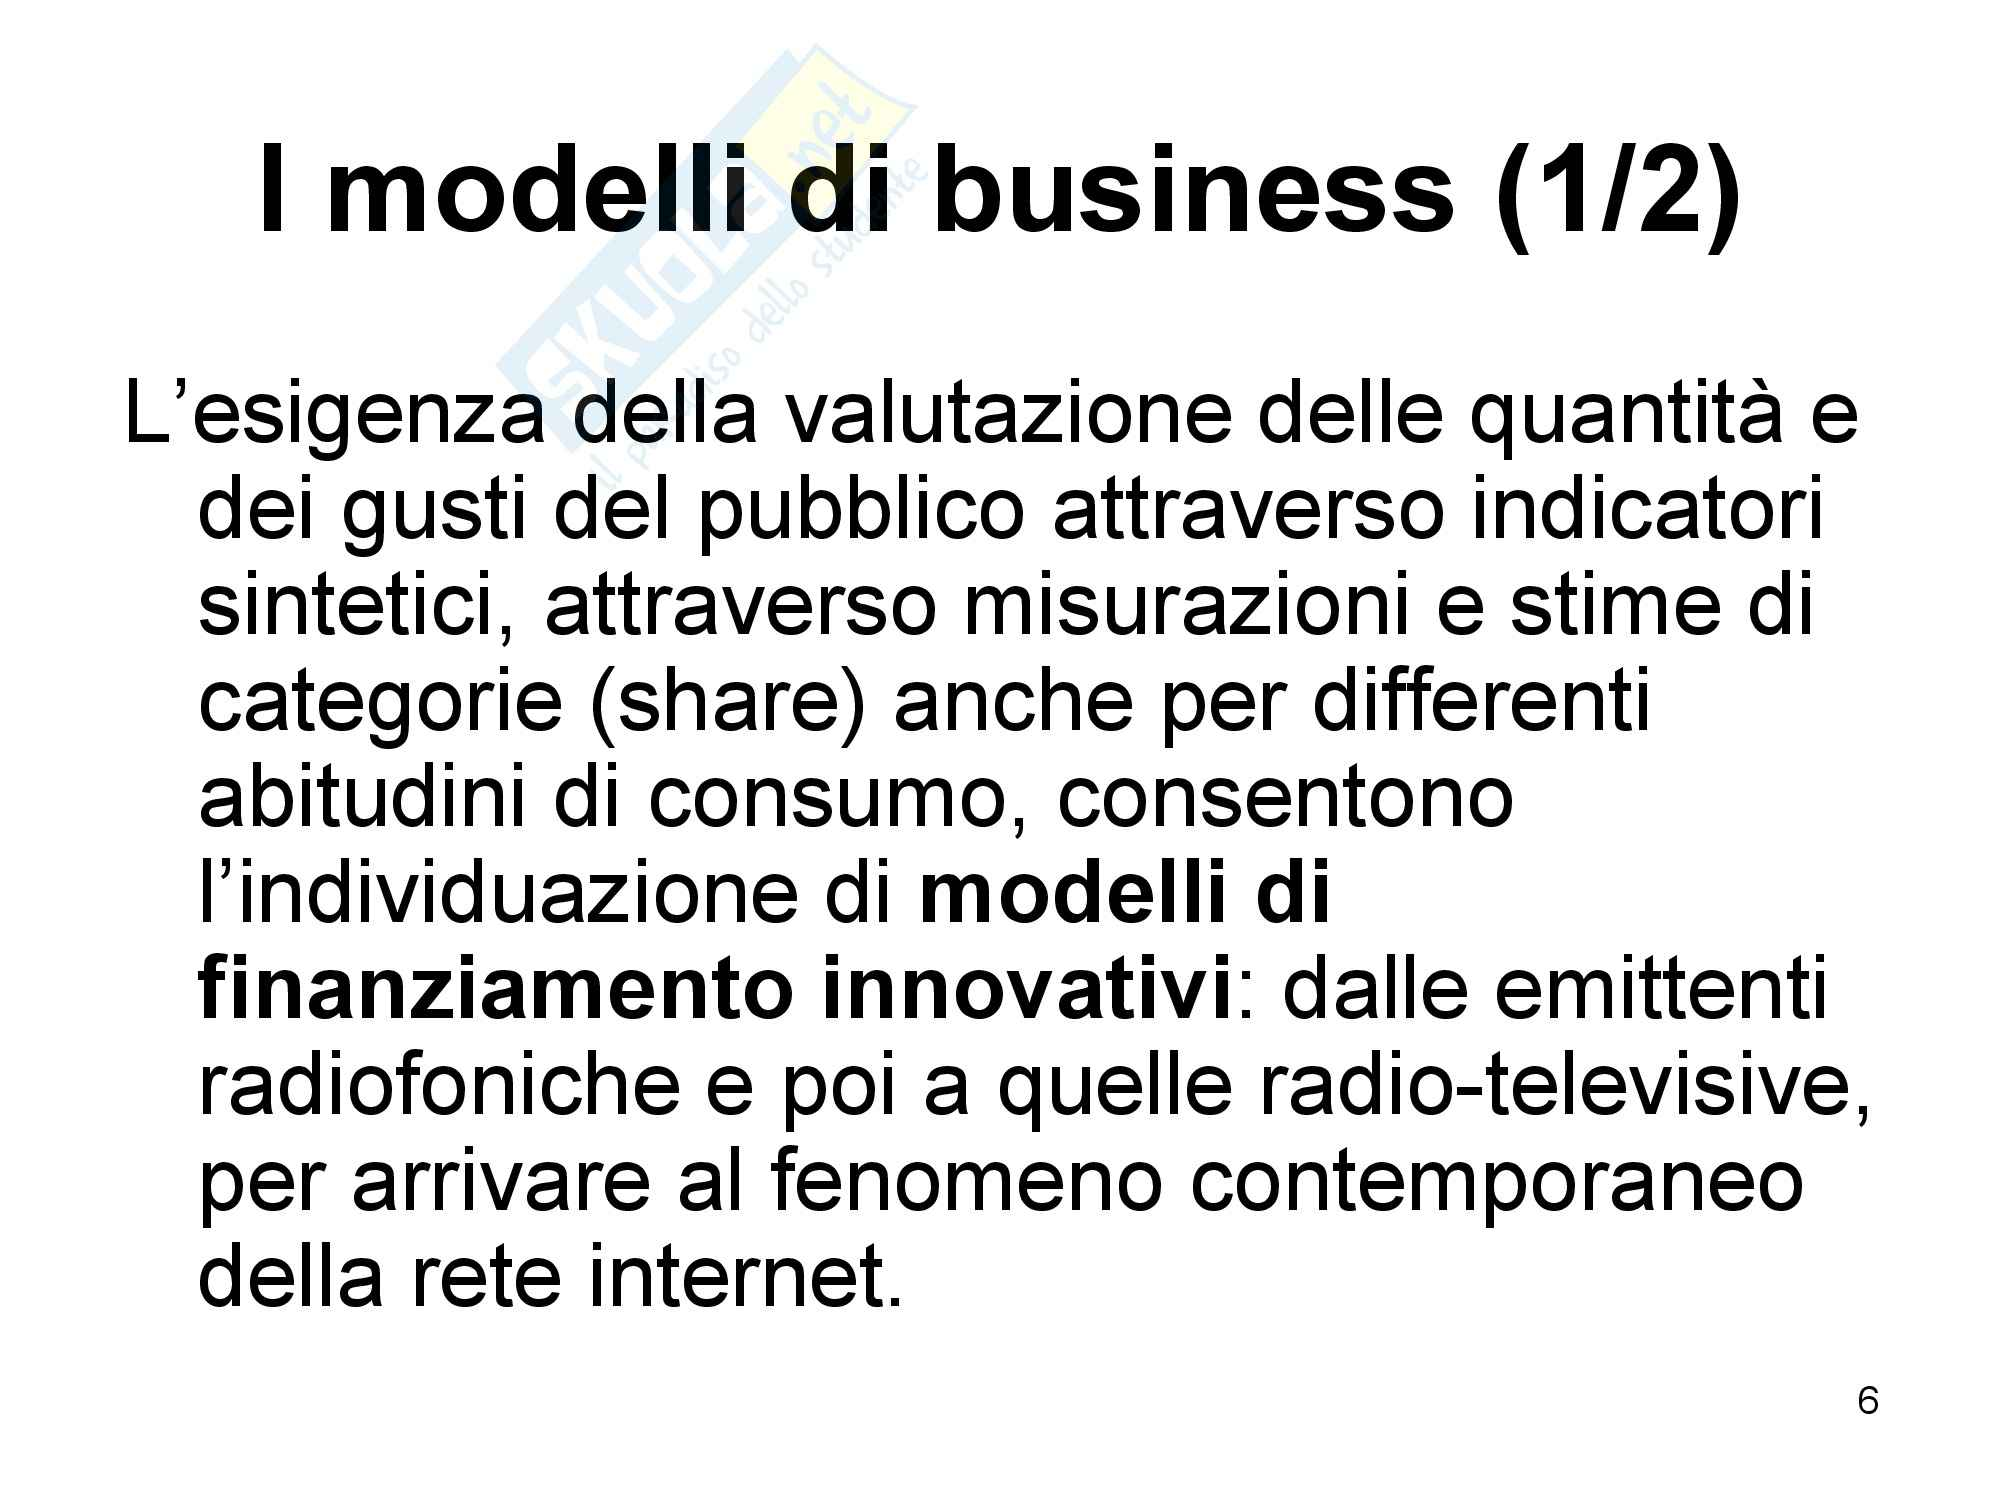 L'audience nell'economia Pag. 6